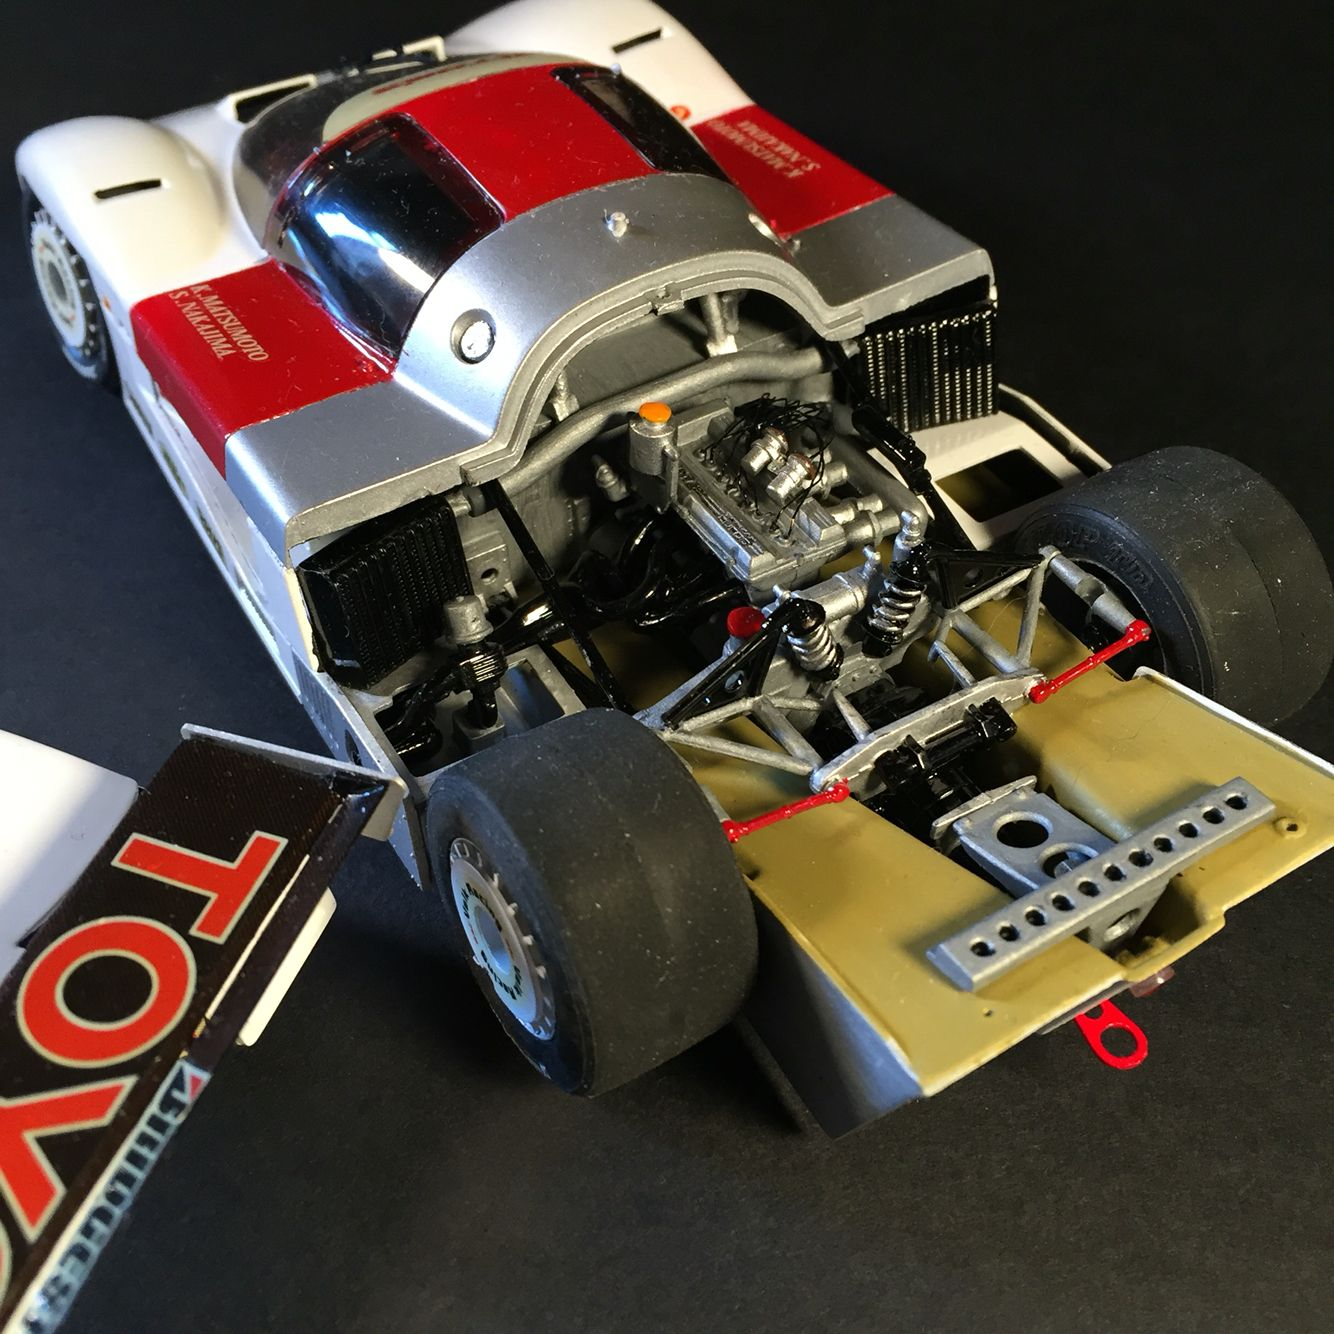 Toyota tom s 84c group c tamiya 1 24 unfortunately the kit was very old and